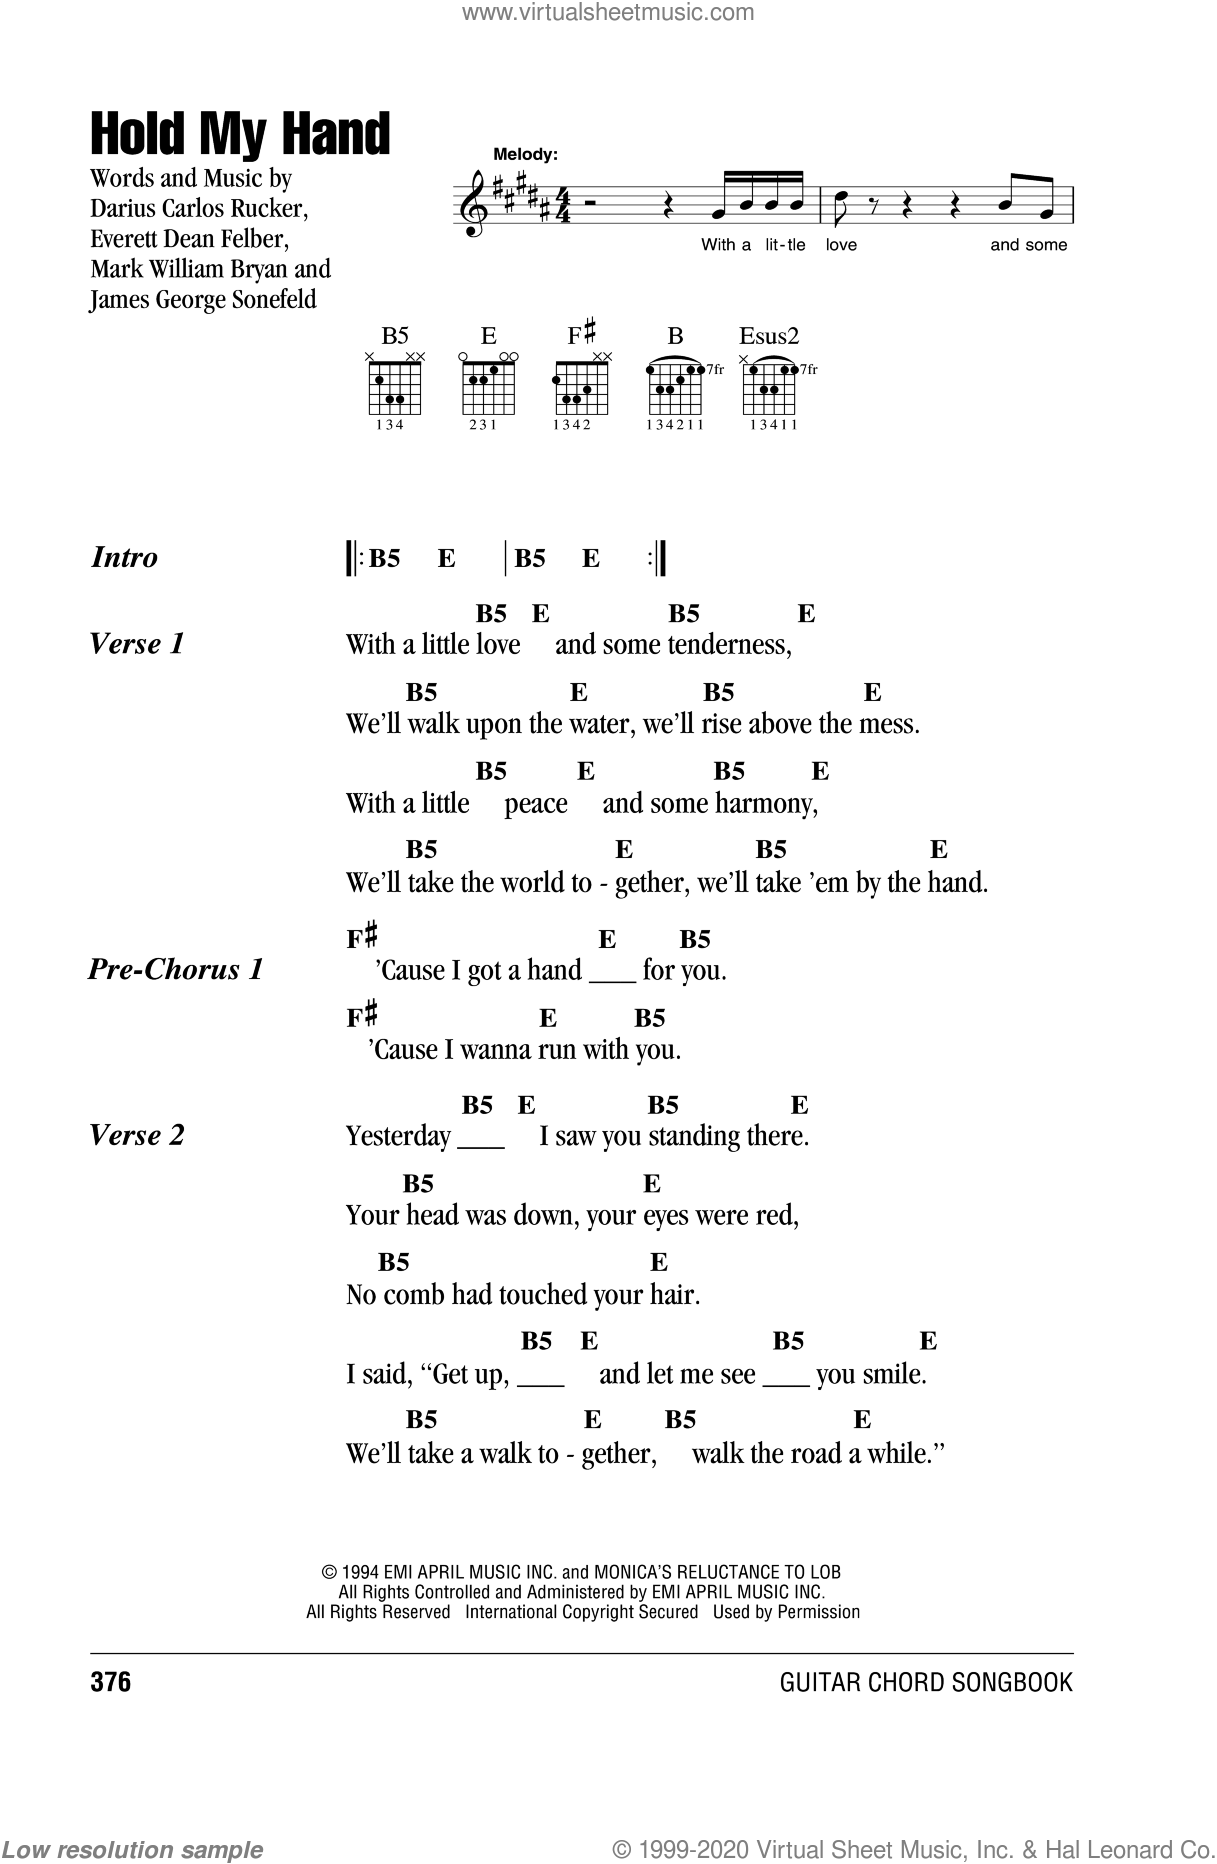 Blowfish - Hold My Hand sheet music for guitar (chords) [PDF]